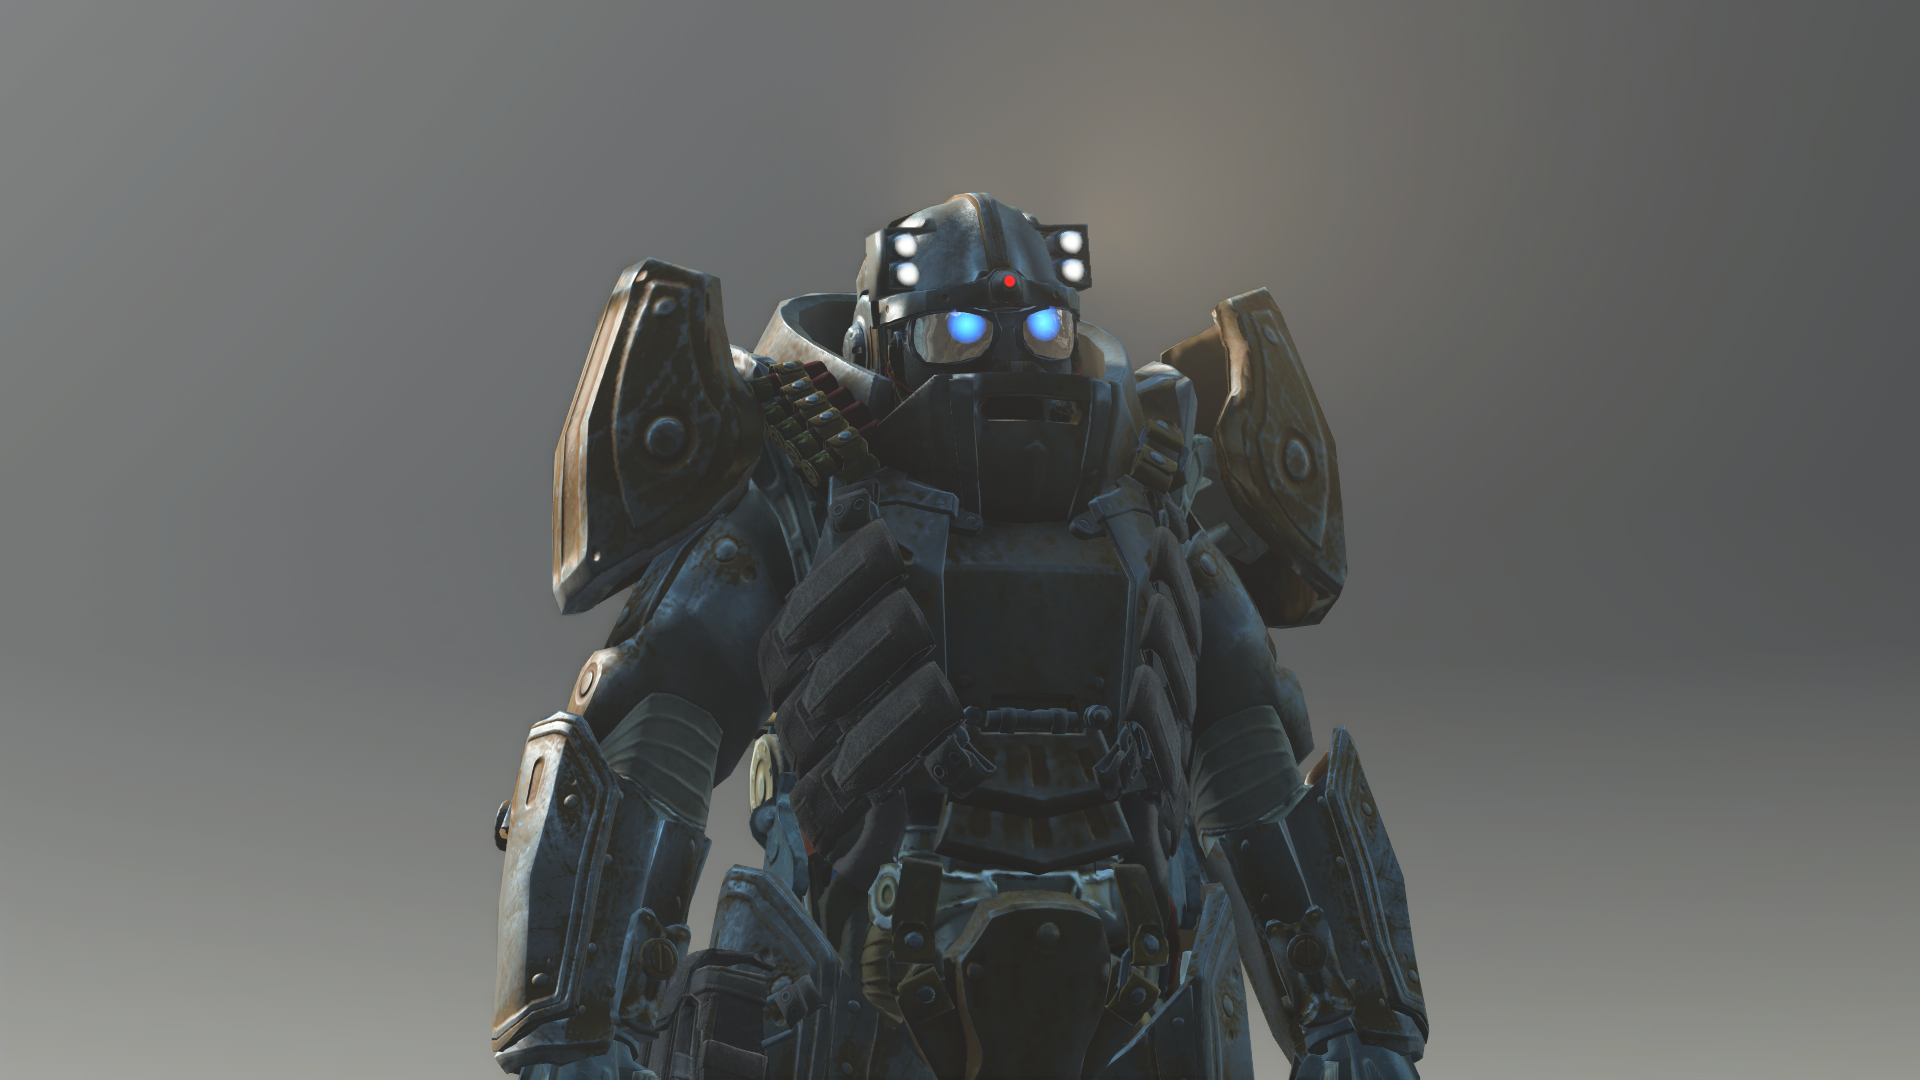 how to get the power armor in fallout 4